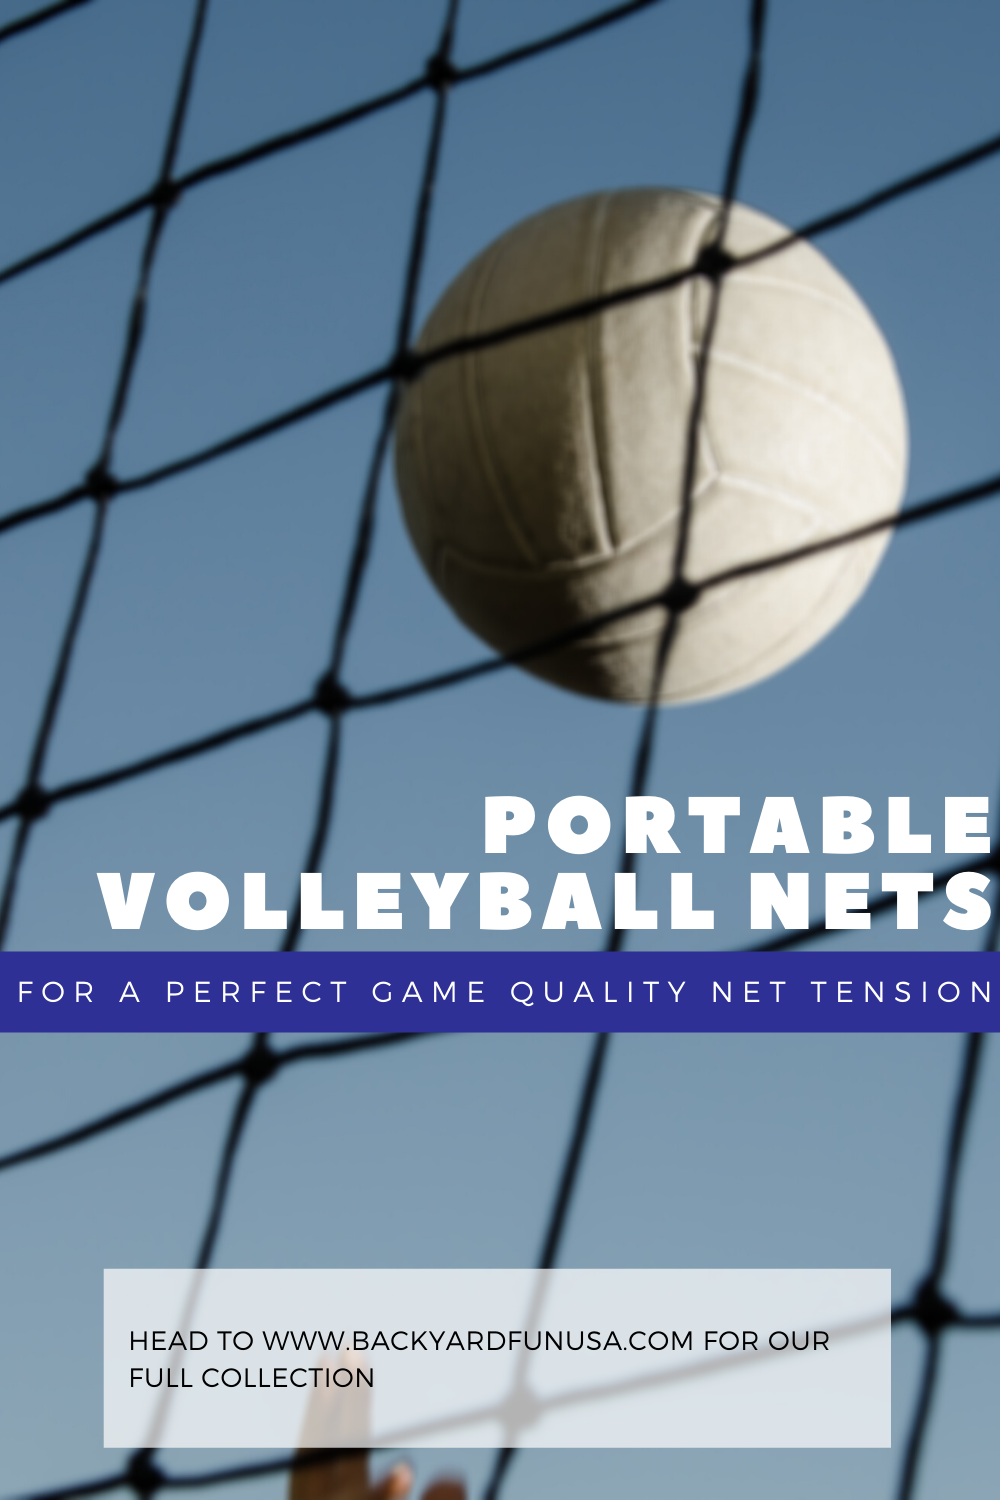 Portable Volleyball Net In 2020 Portable Volleyball Net Volleyball Nets Volleyball